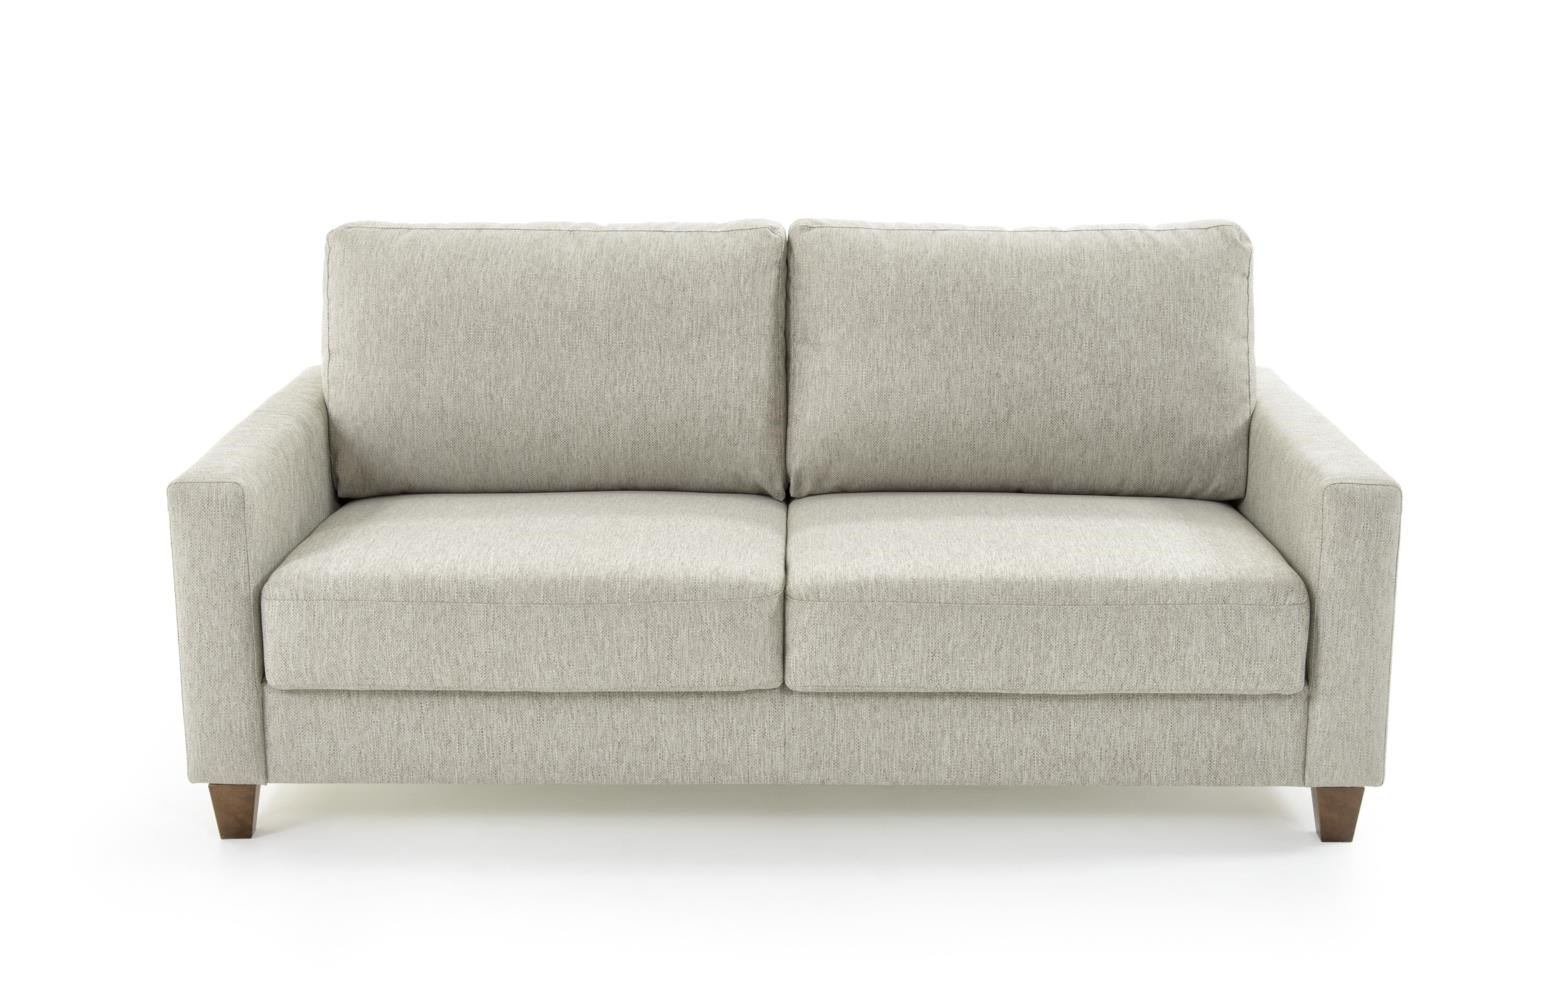 Sofa Queen Nico Contemporary Queen Size Sleeper Sofa By Luonto At Baer S Furniture